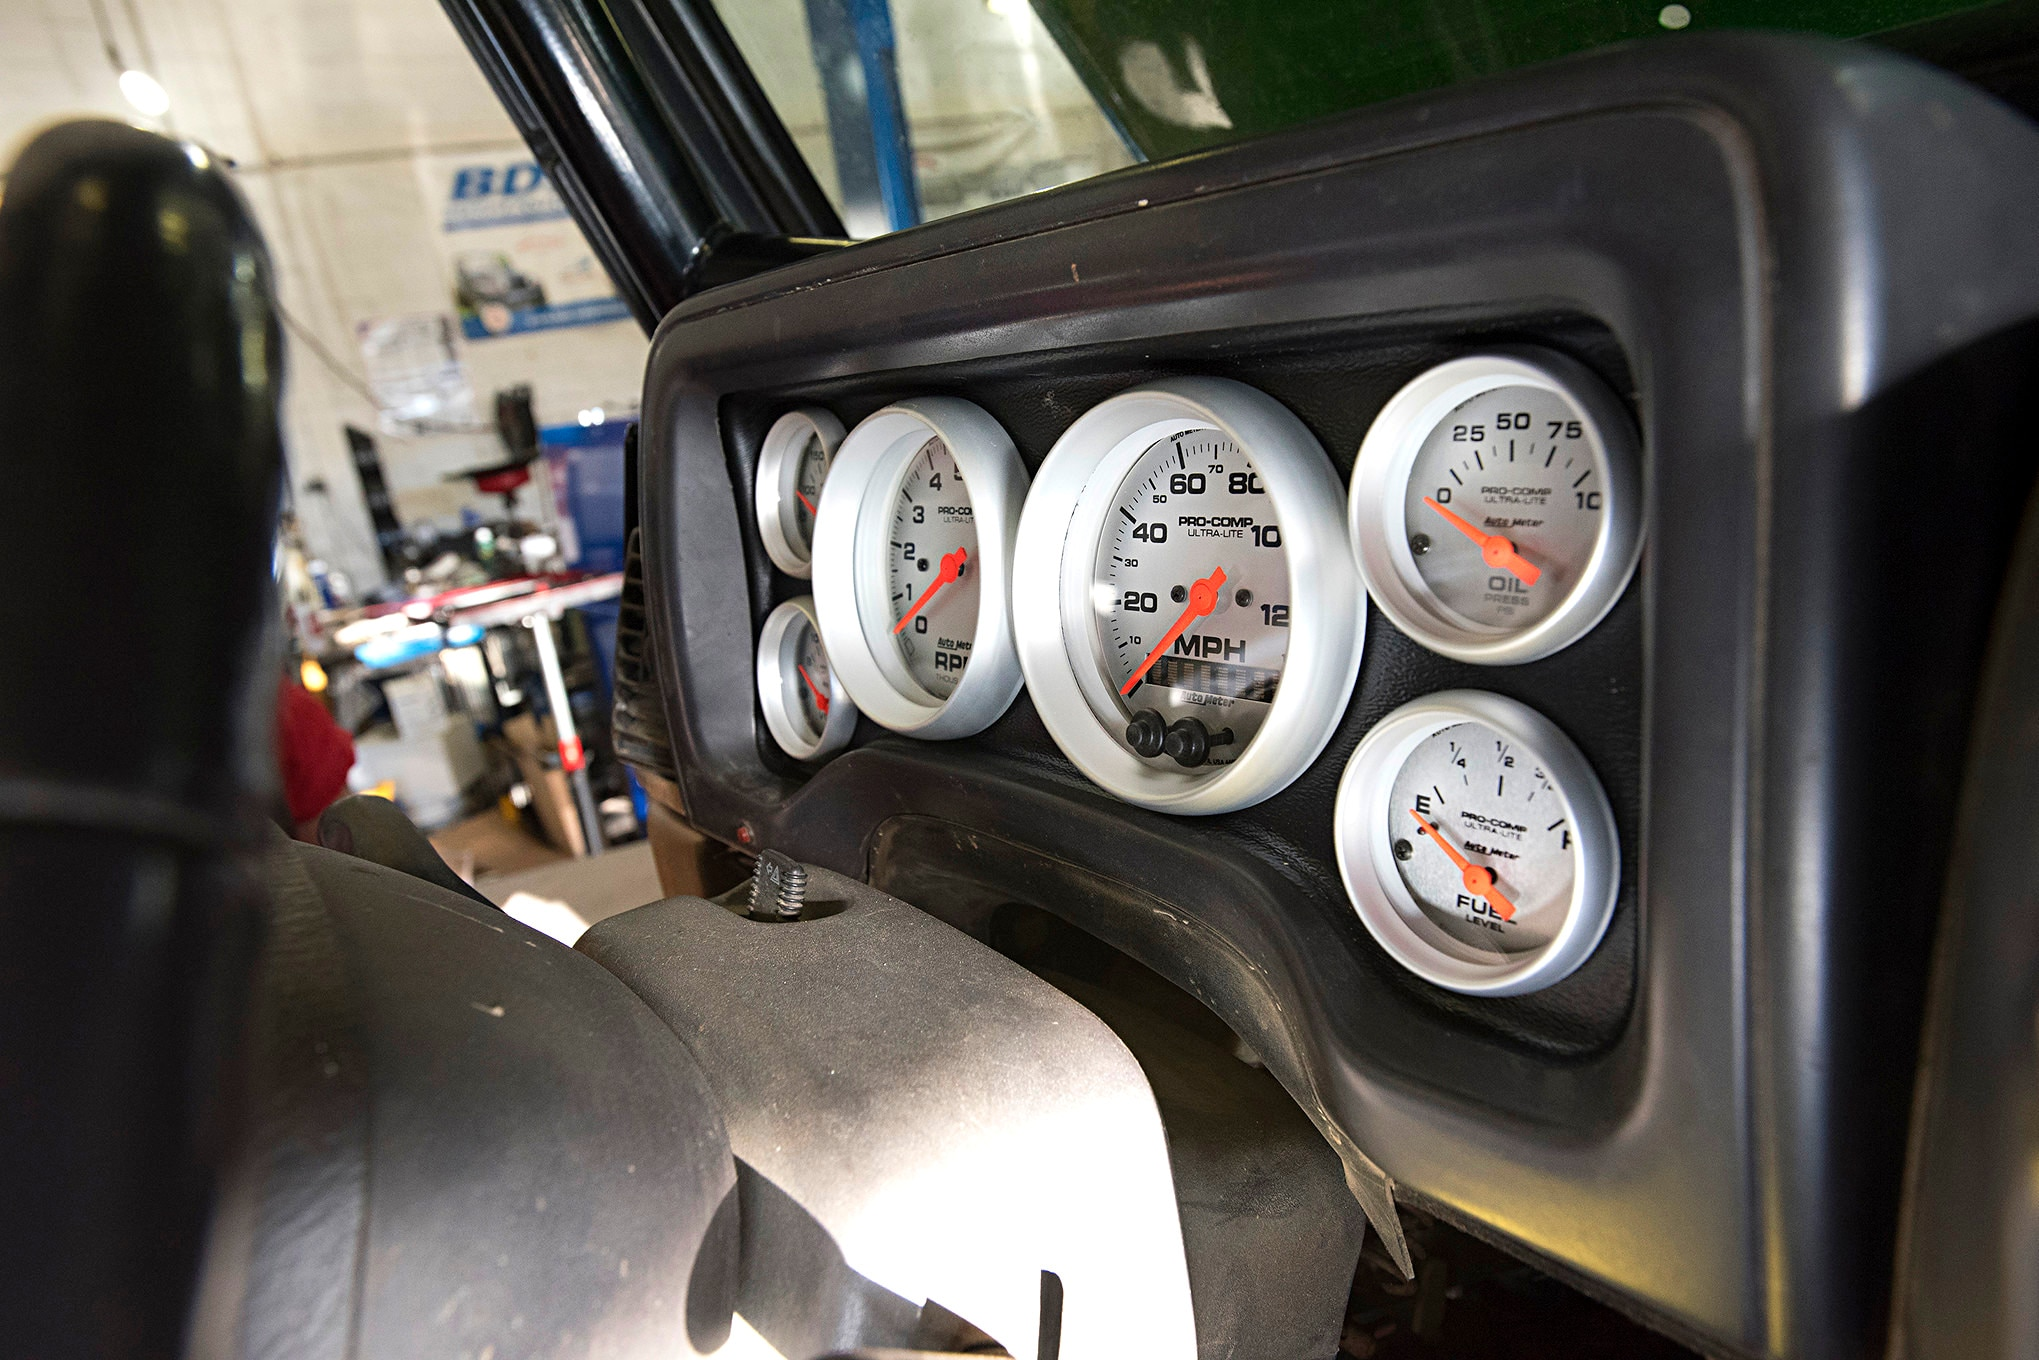 The dash in our old TJ was cracked and a couple gauges didn't work, so we dropped in a set of Auto Meter gauges in its Direct Fit Dash Panel. The gauges wired directly to the LS1 sensors so no special adapters were needed.